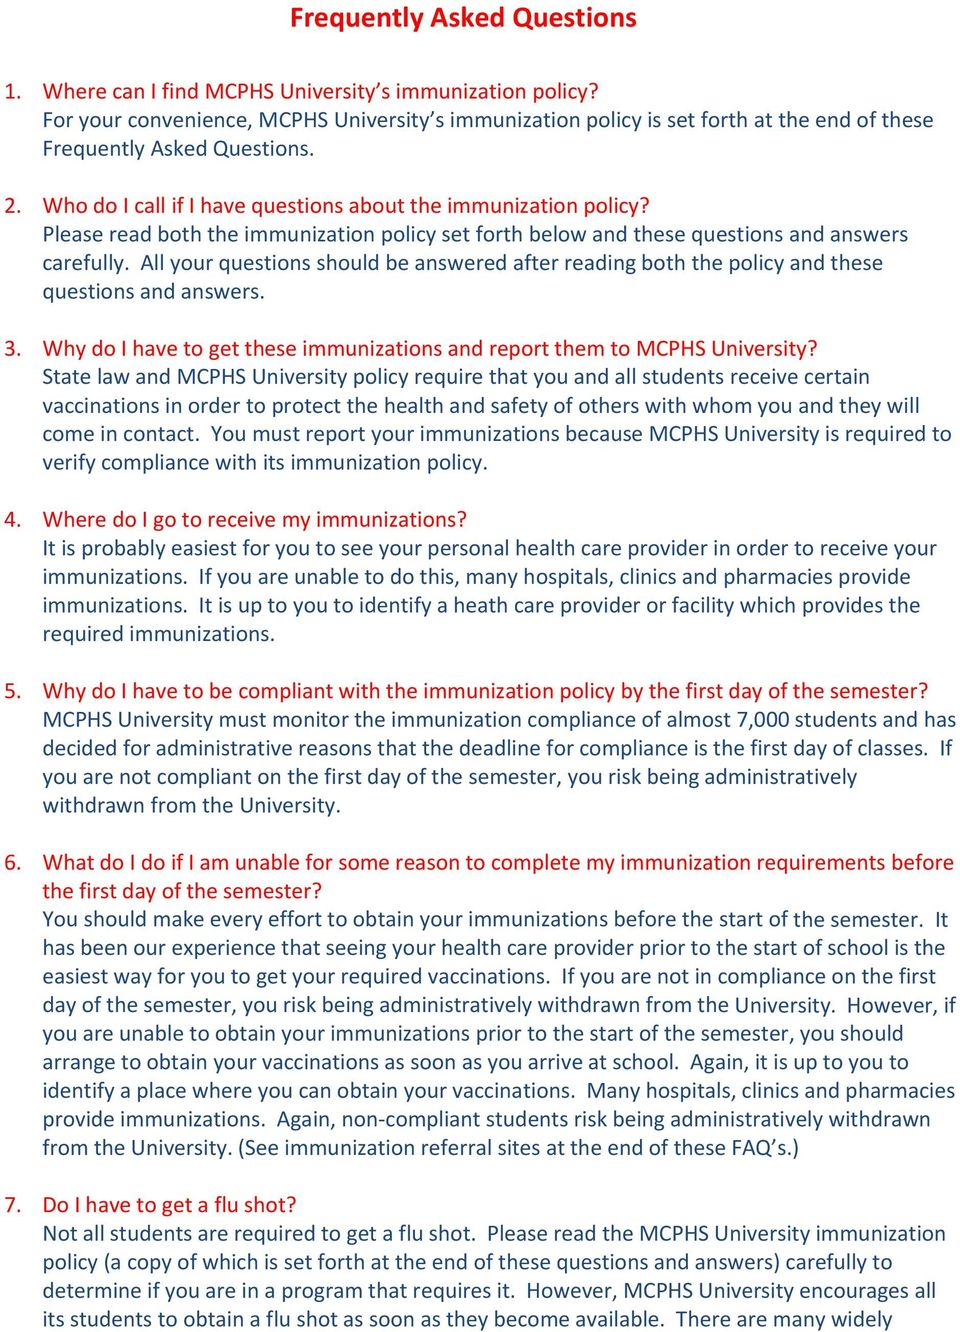 Please read both the immunization policy set forth below and these questions and answers carefully. All your questions should be answered after reading both the policy and these questions and answers.